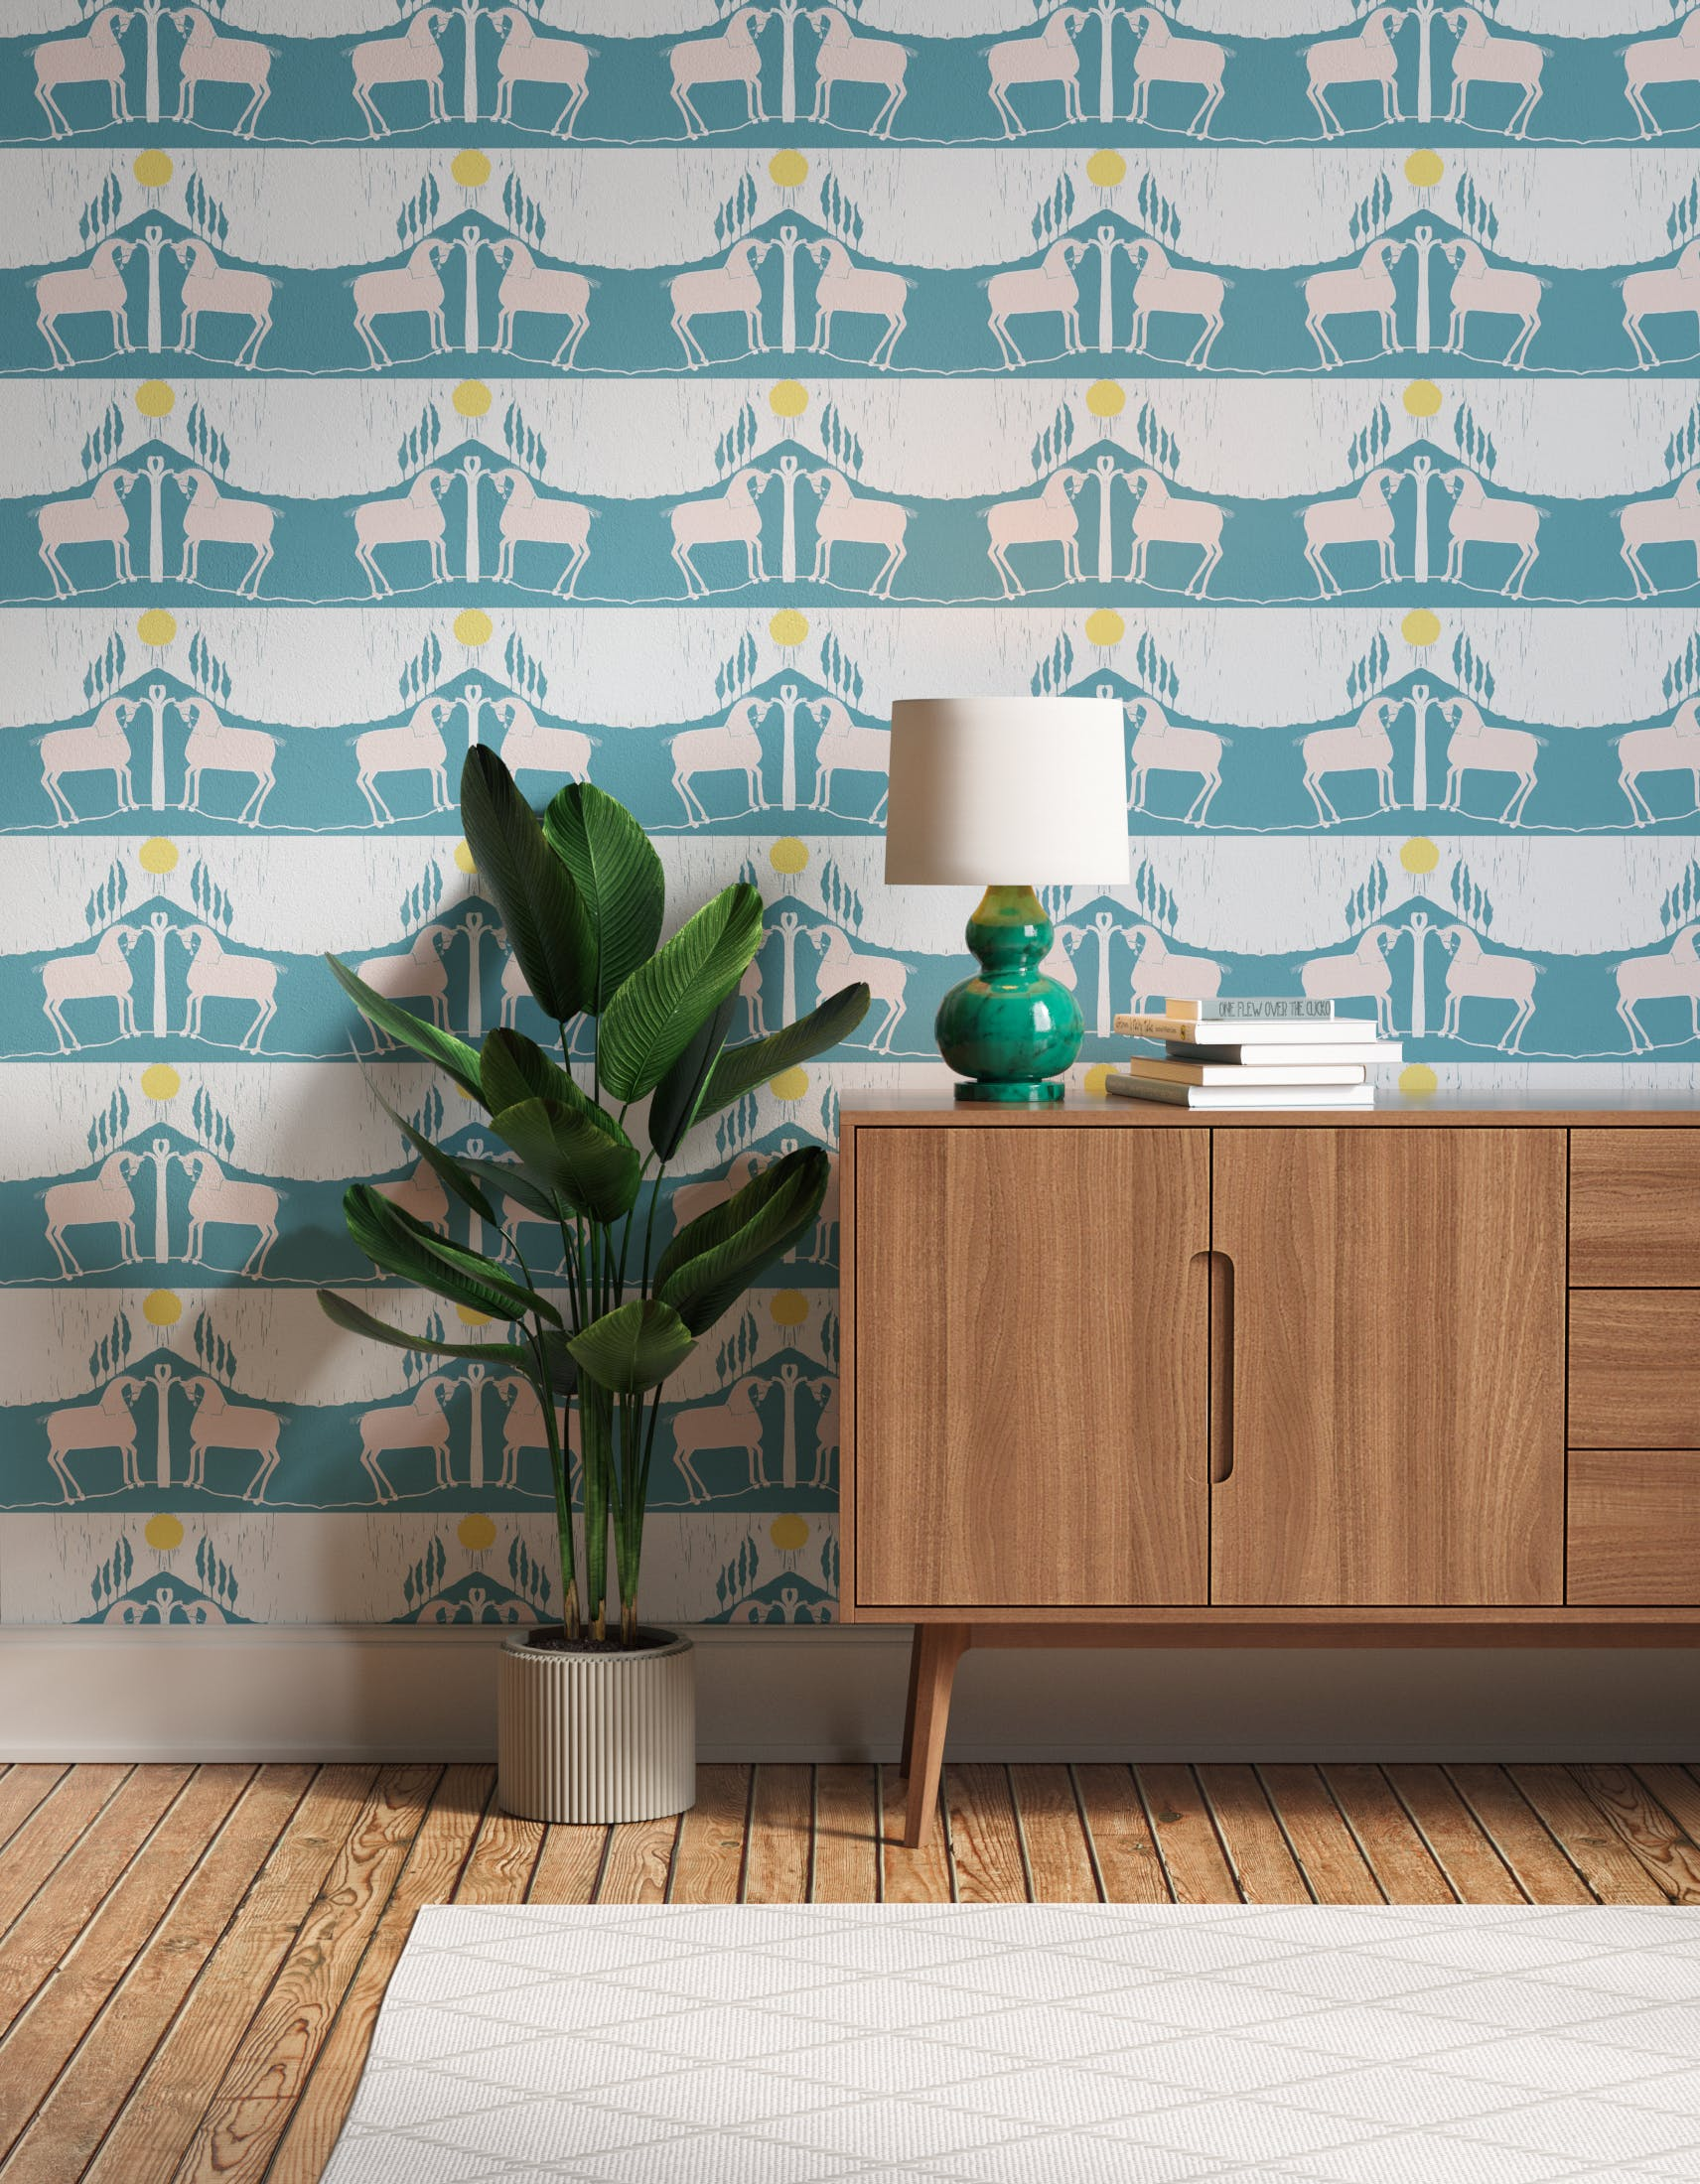 Hallway decorated with Lick x Annika Reed Western 01 white and mint green animal wallpaper